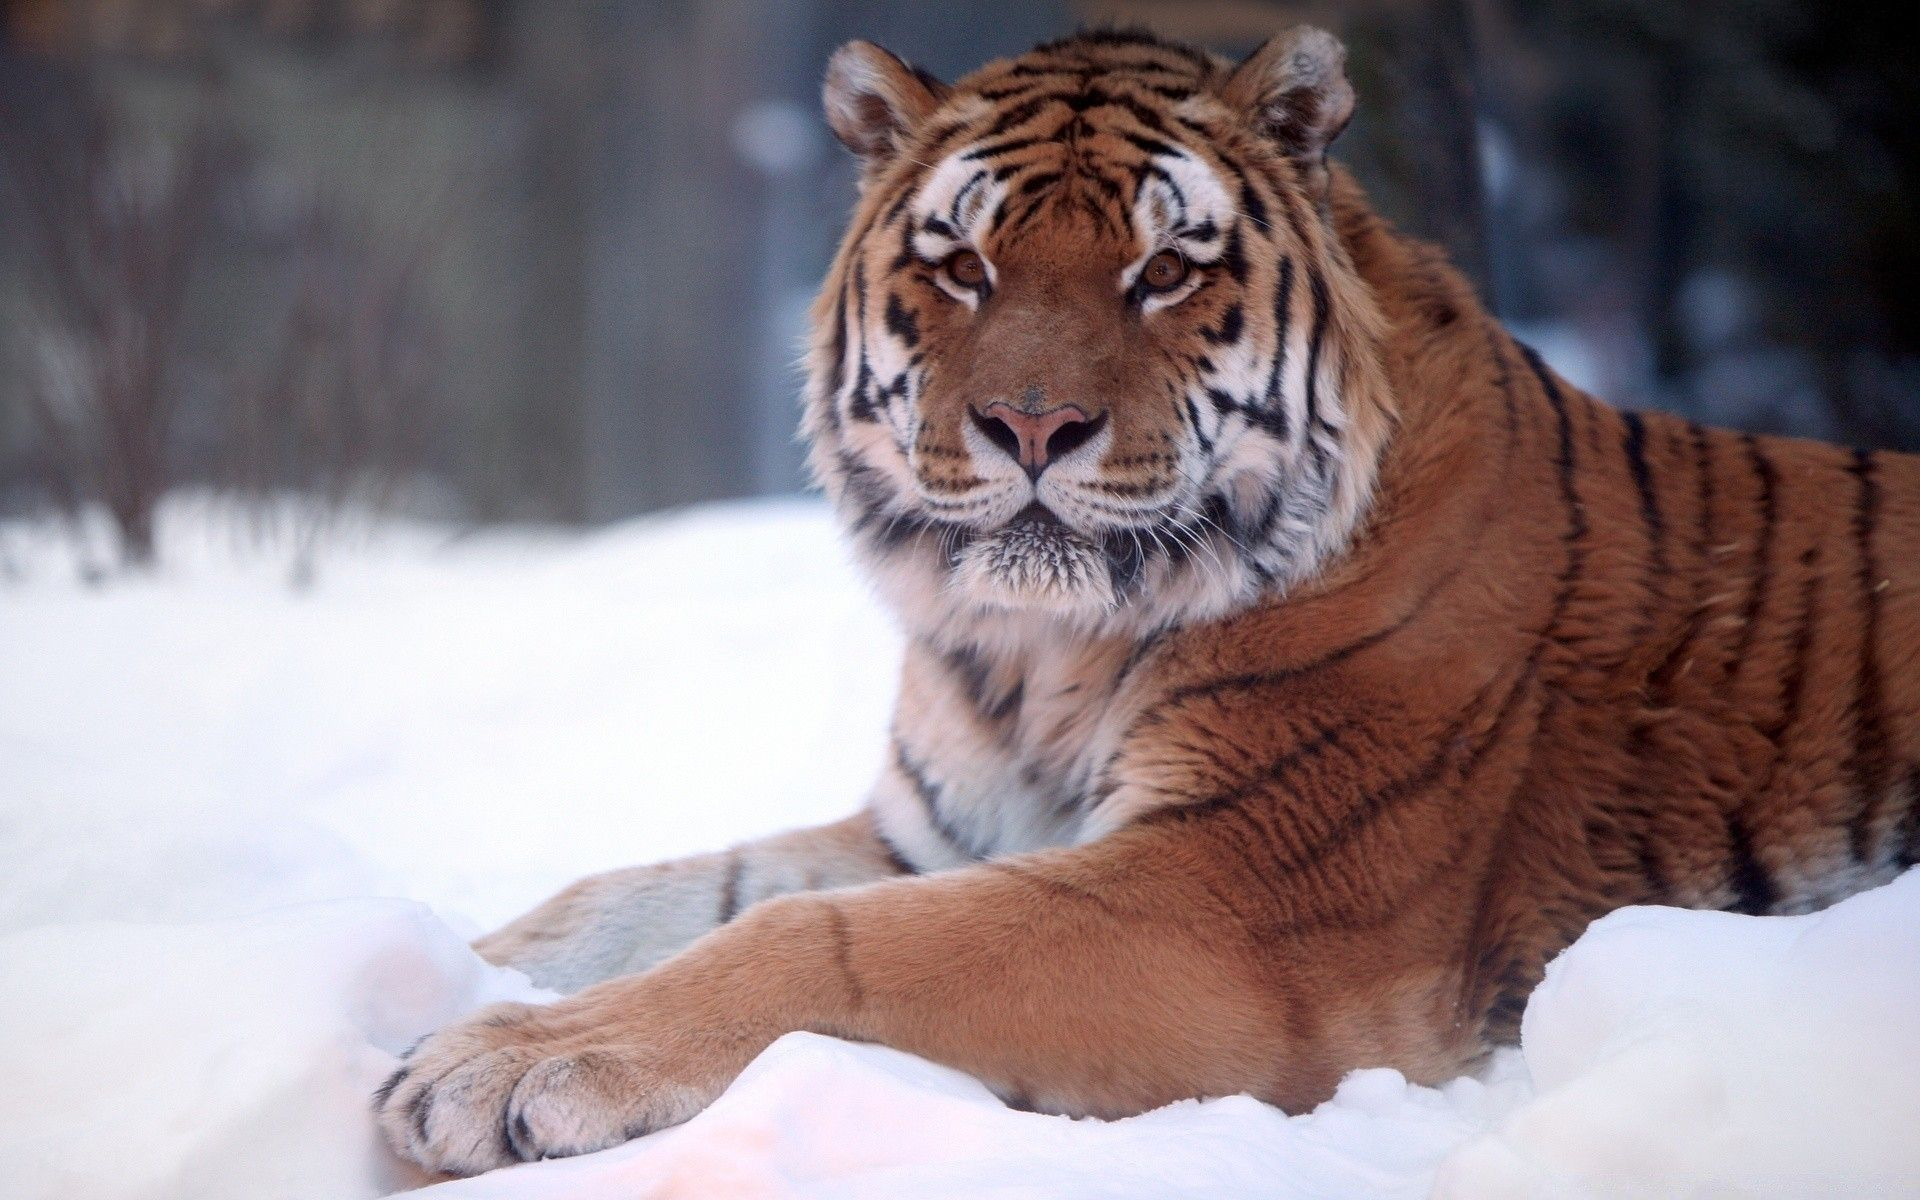 Tiger and snow, Background Wallpaper